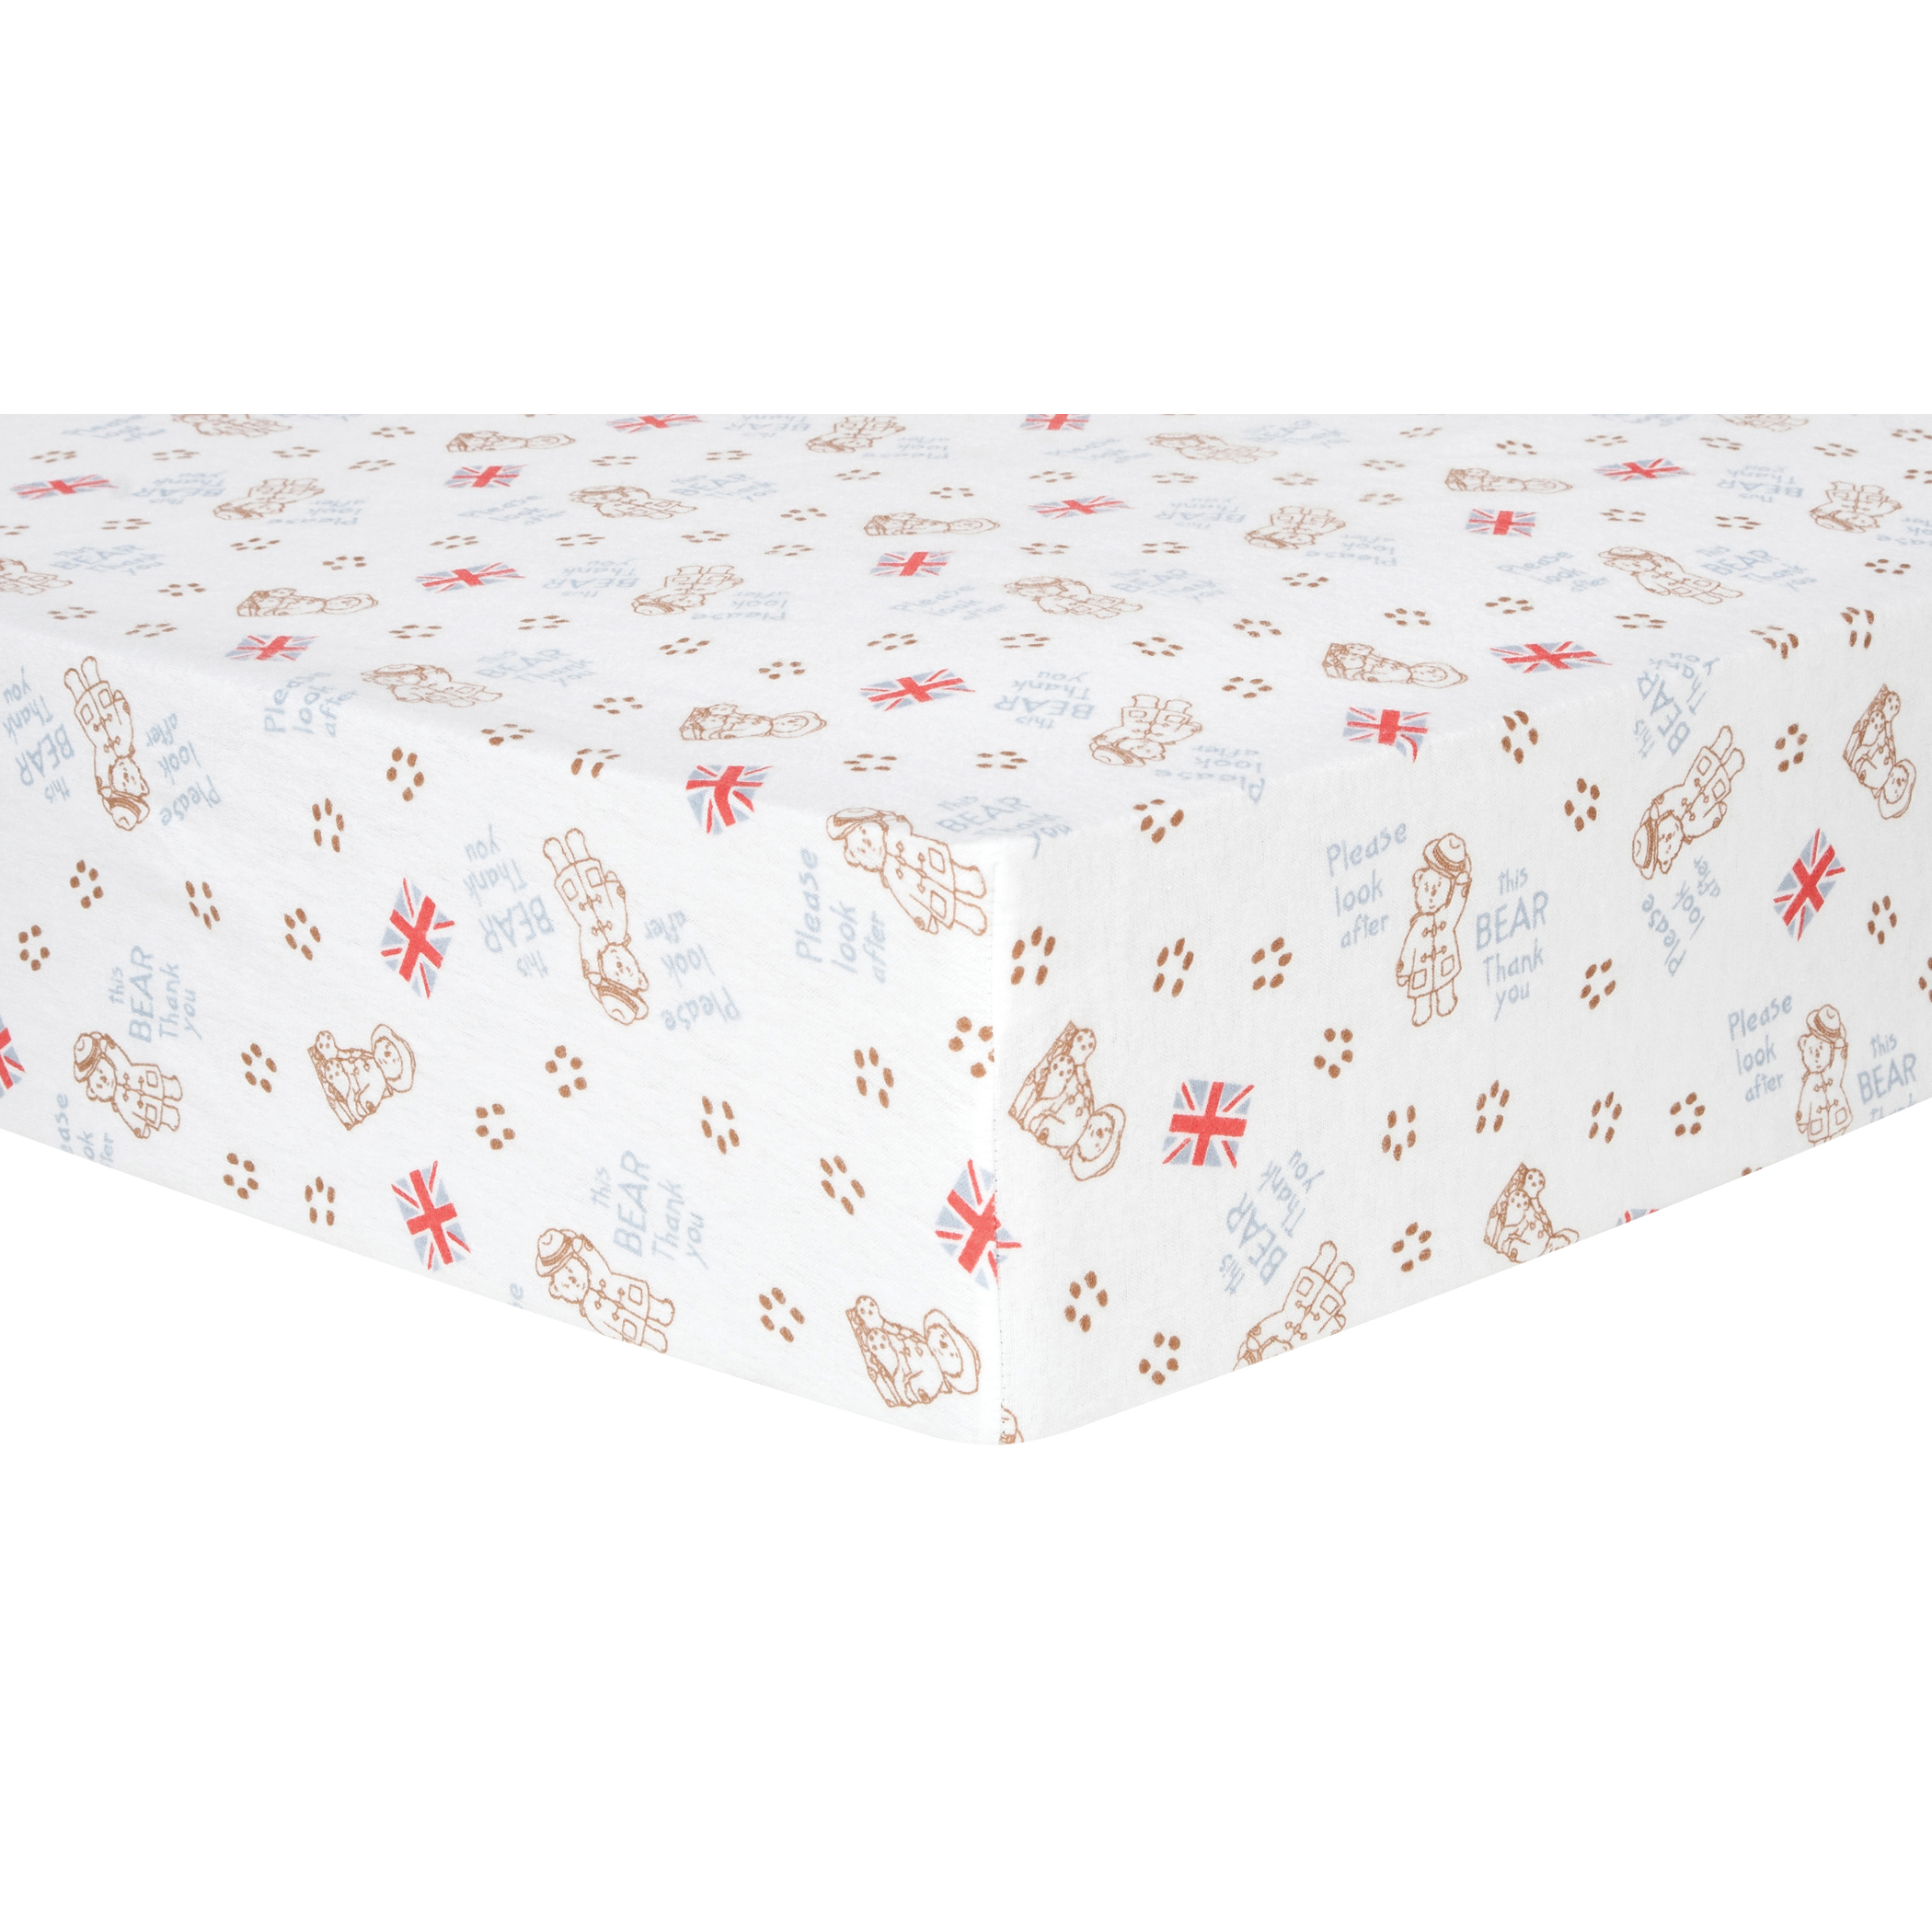 Paddington Bear Deluxe Flannel Fitted Crib Sheet